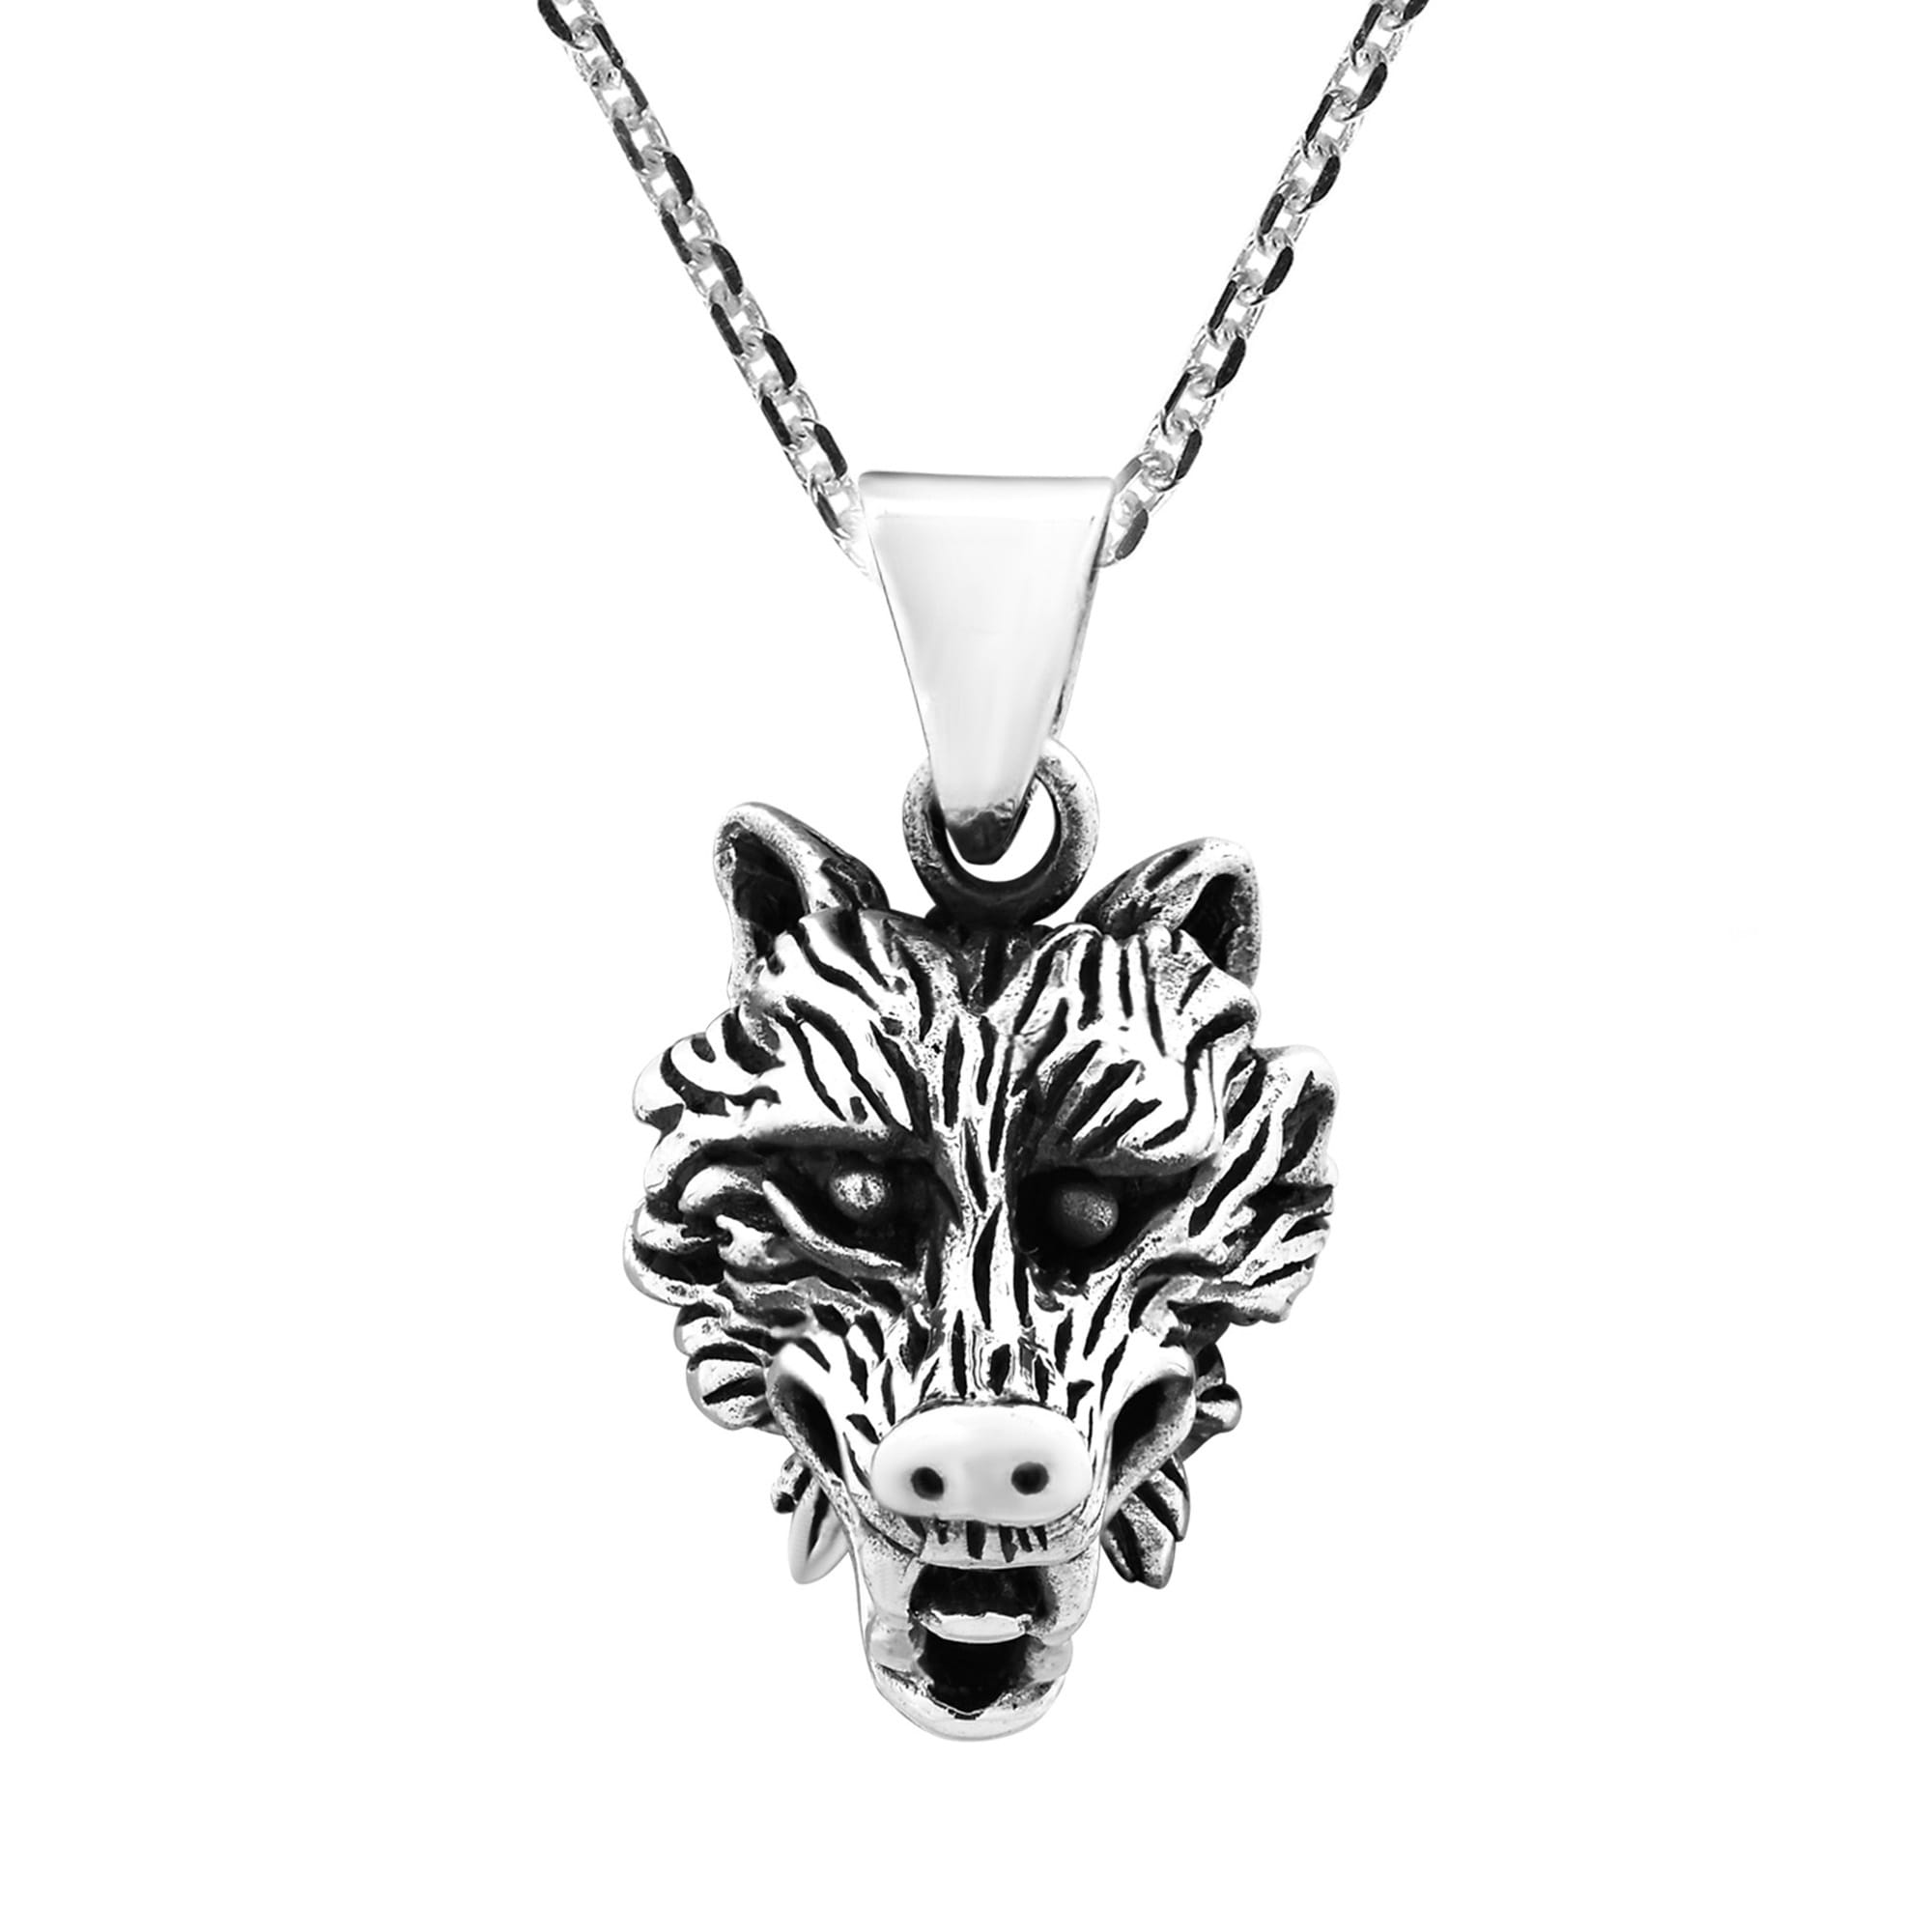 on free and overstock pendant thailand jewelry shipping sterling orders fierce over silver product wolf necklace watches chain noble com head